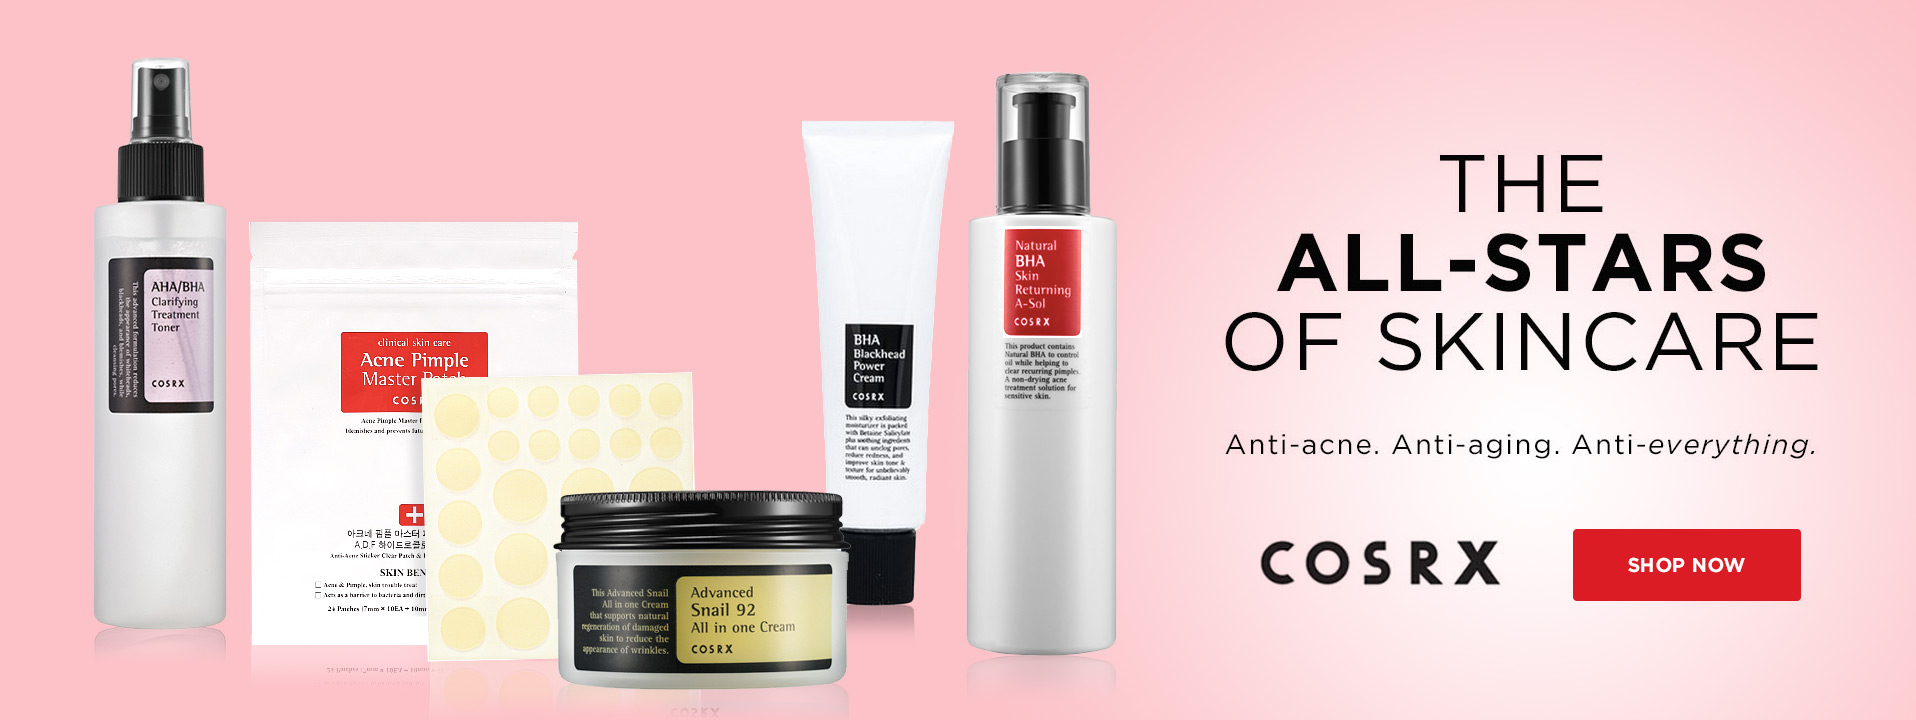 The All-Stars of Skincare. Anti-acne. Anti-aging. Anti-everything.